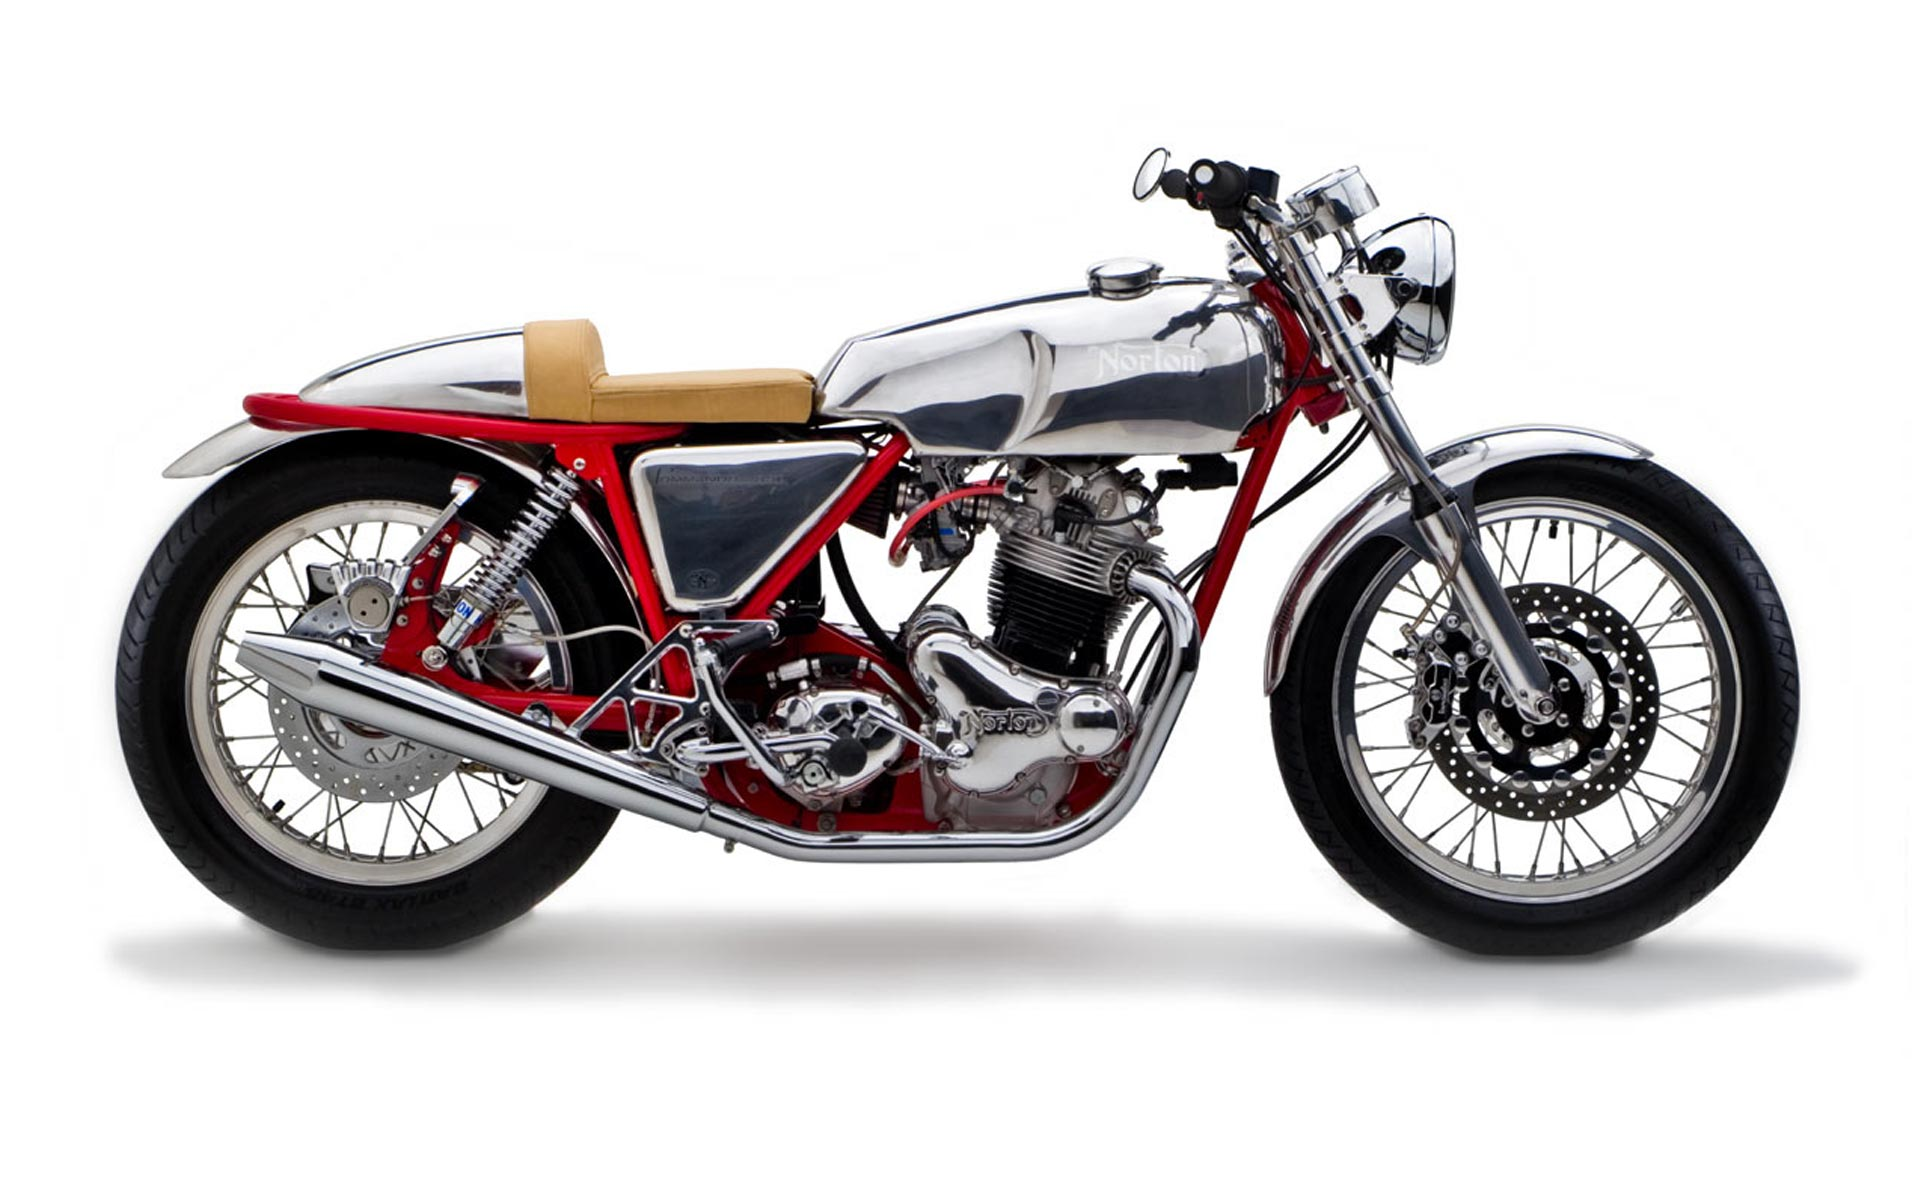 Motorcycle British Hd Wallpaper  High Quality Wallpapers